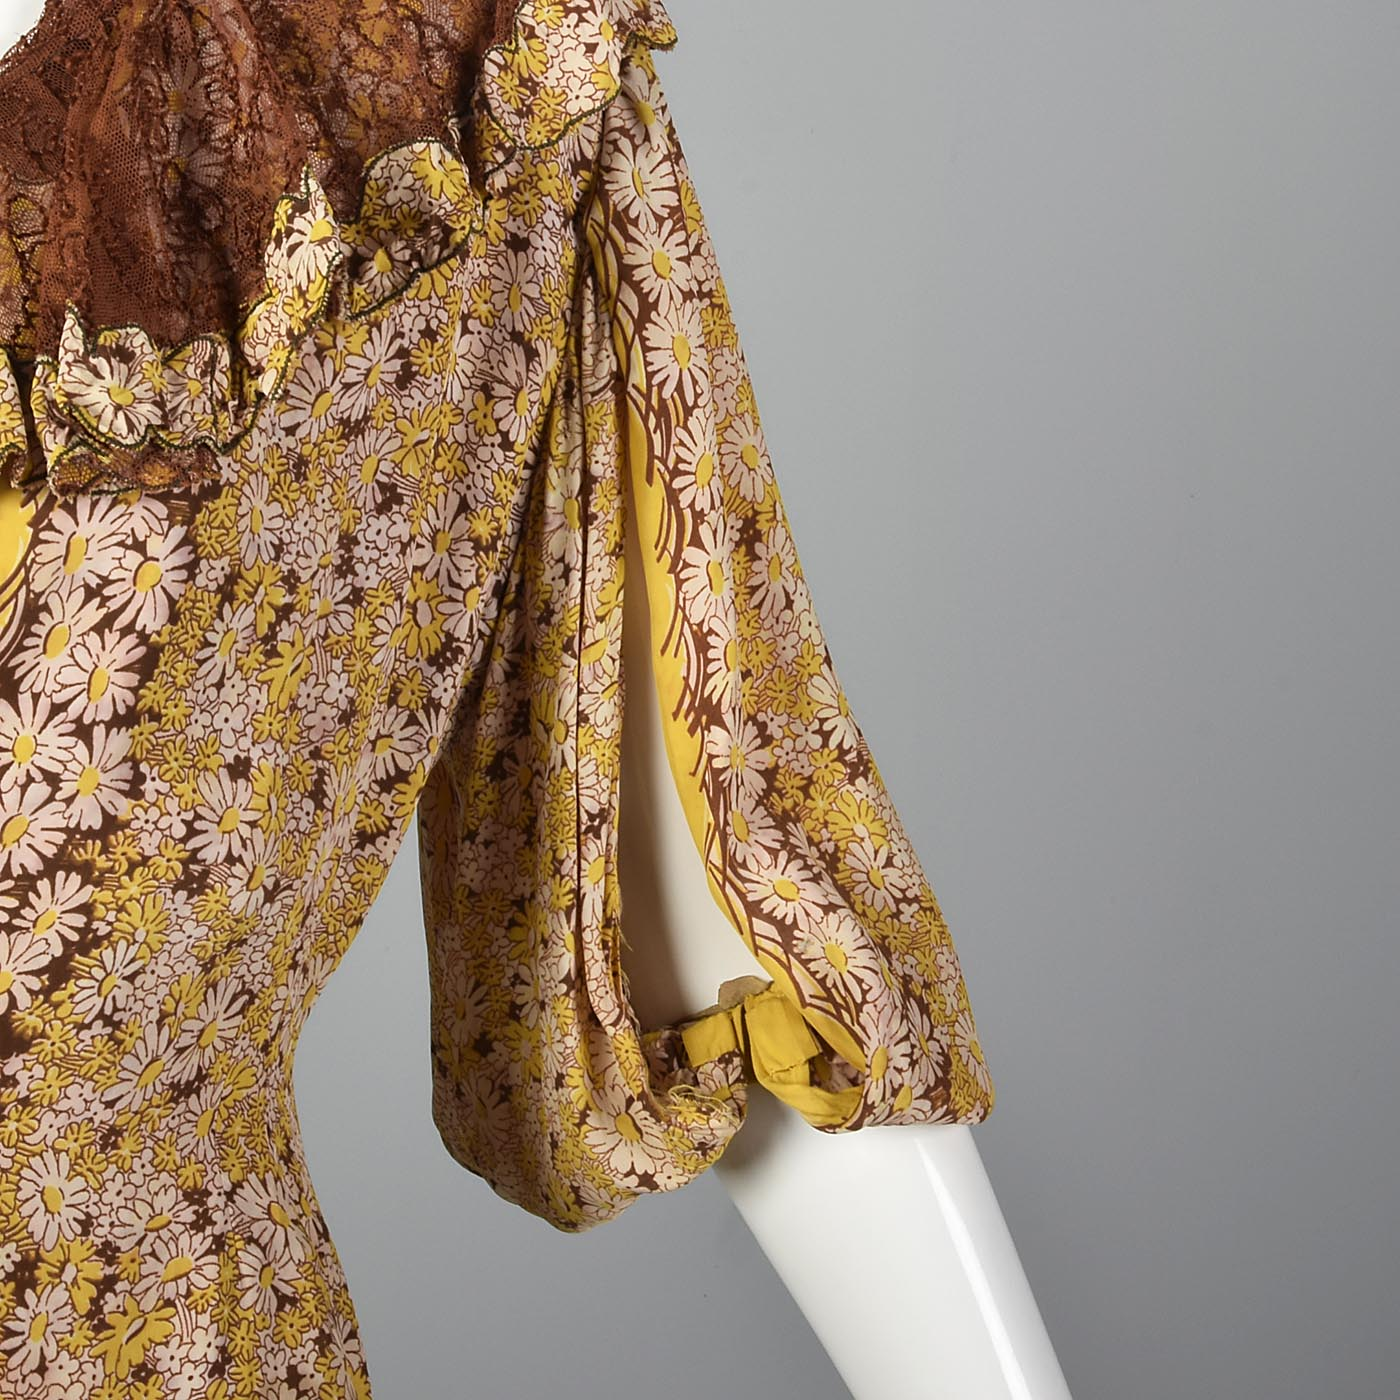 1930s Yellow Floral Dress with Open Sleeve Jacket